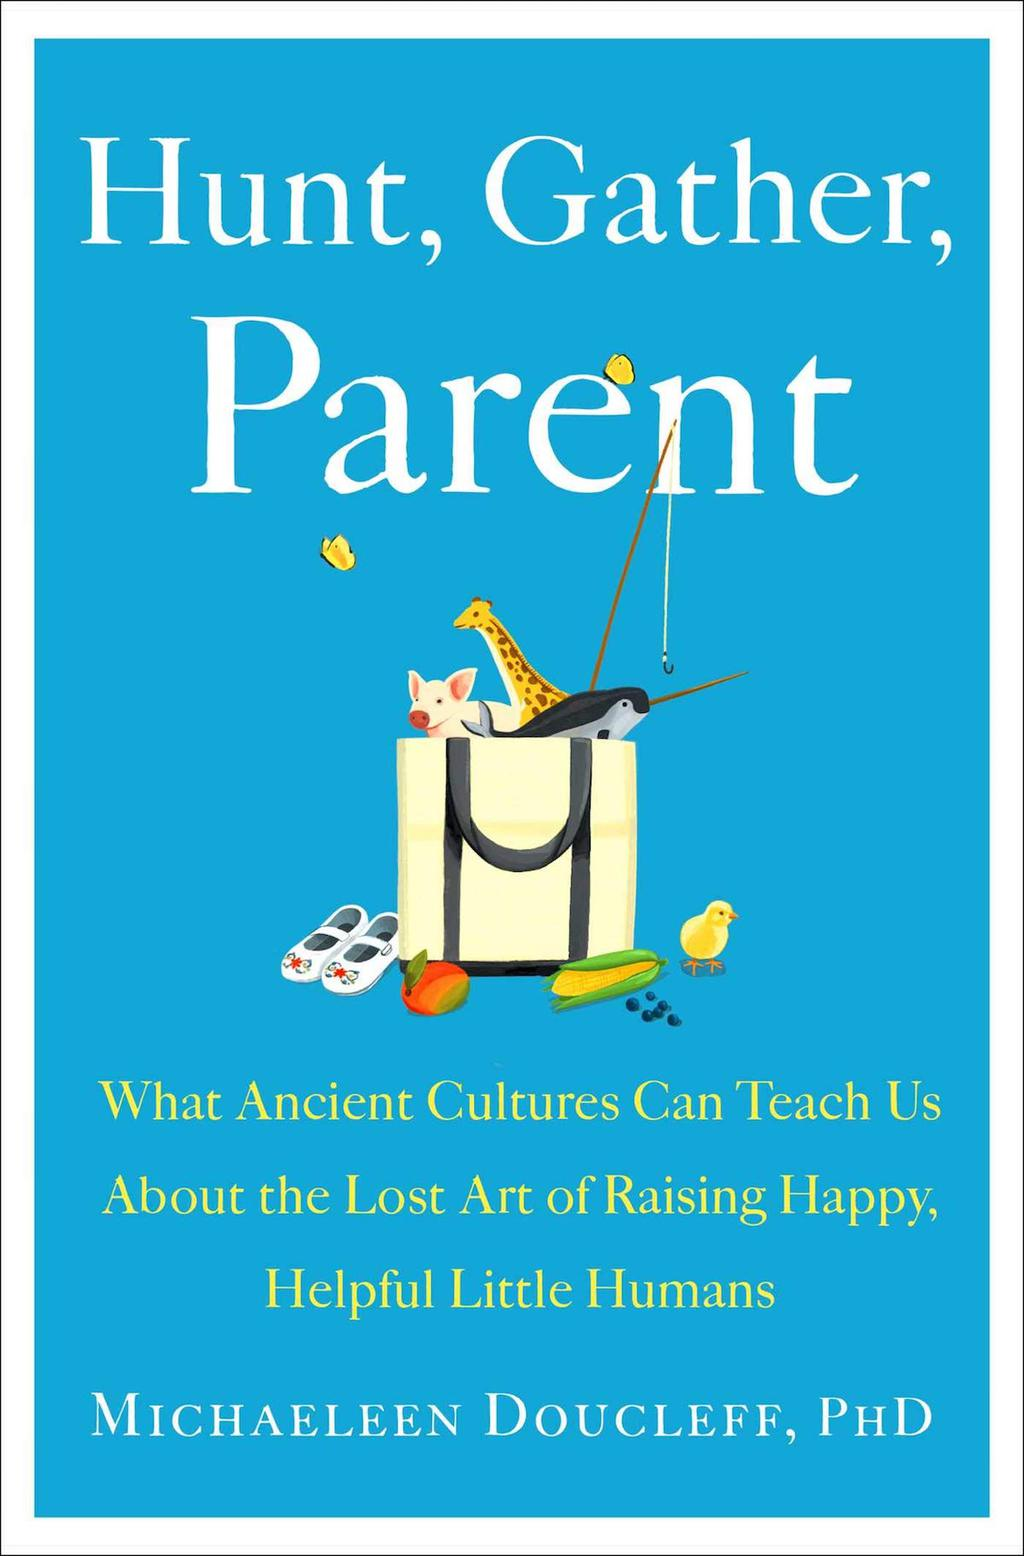 daily-mom-parent-portal-best-books-to-read-right-now